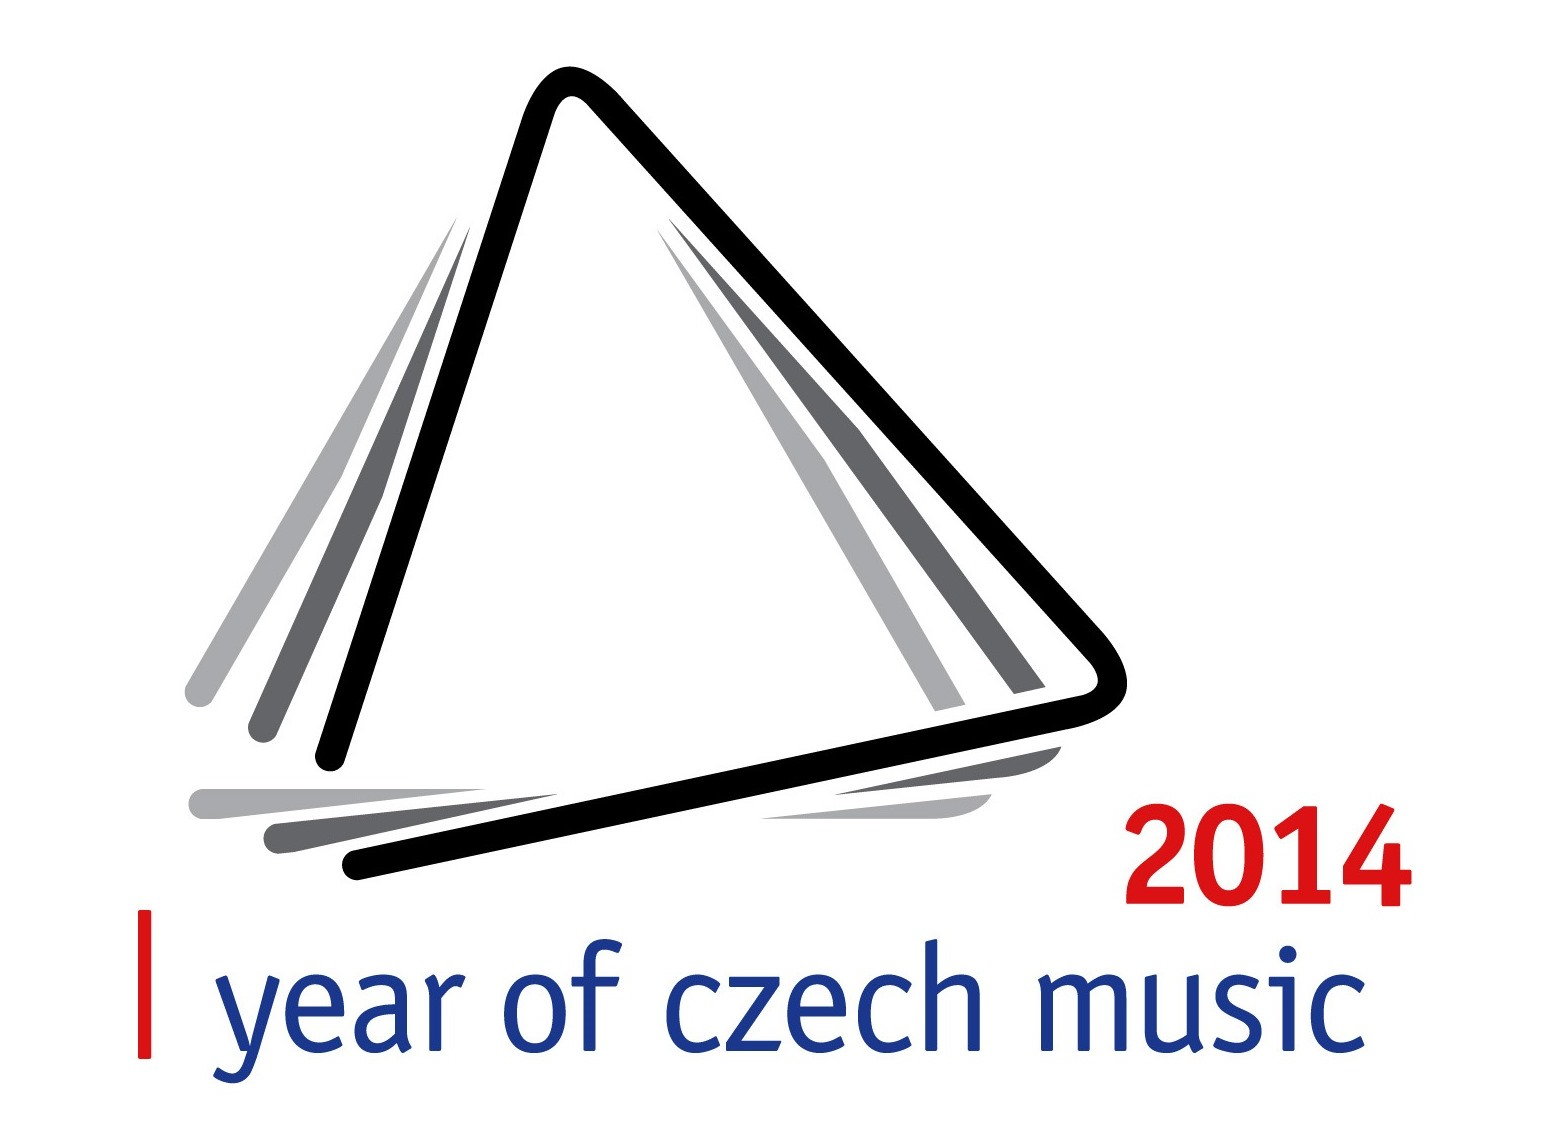 year_of_czech_music_logo____kopie_1